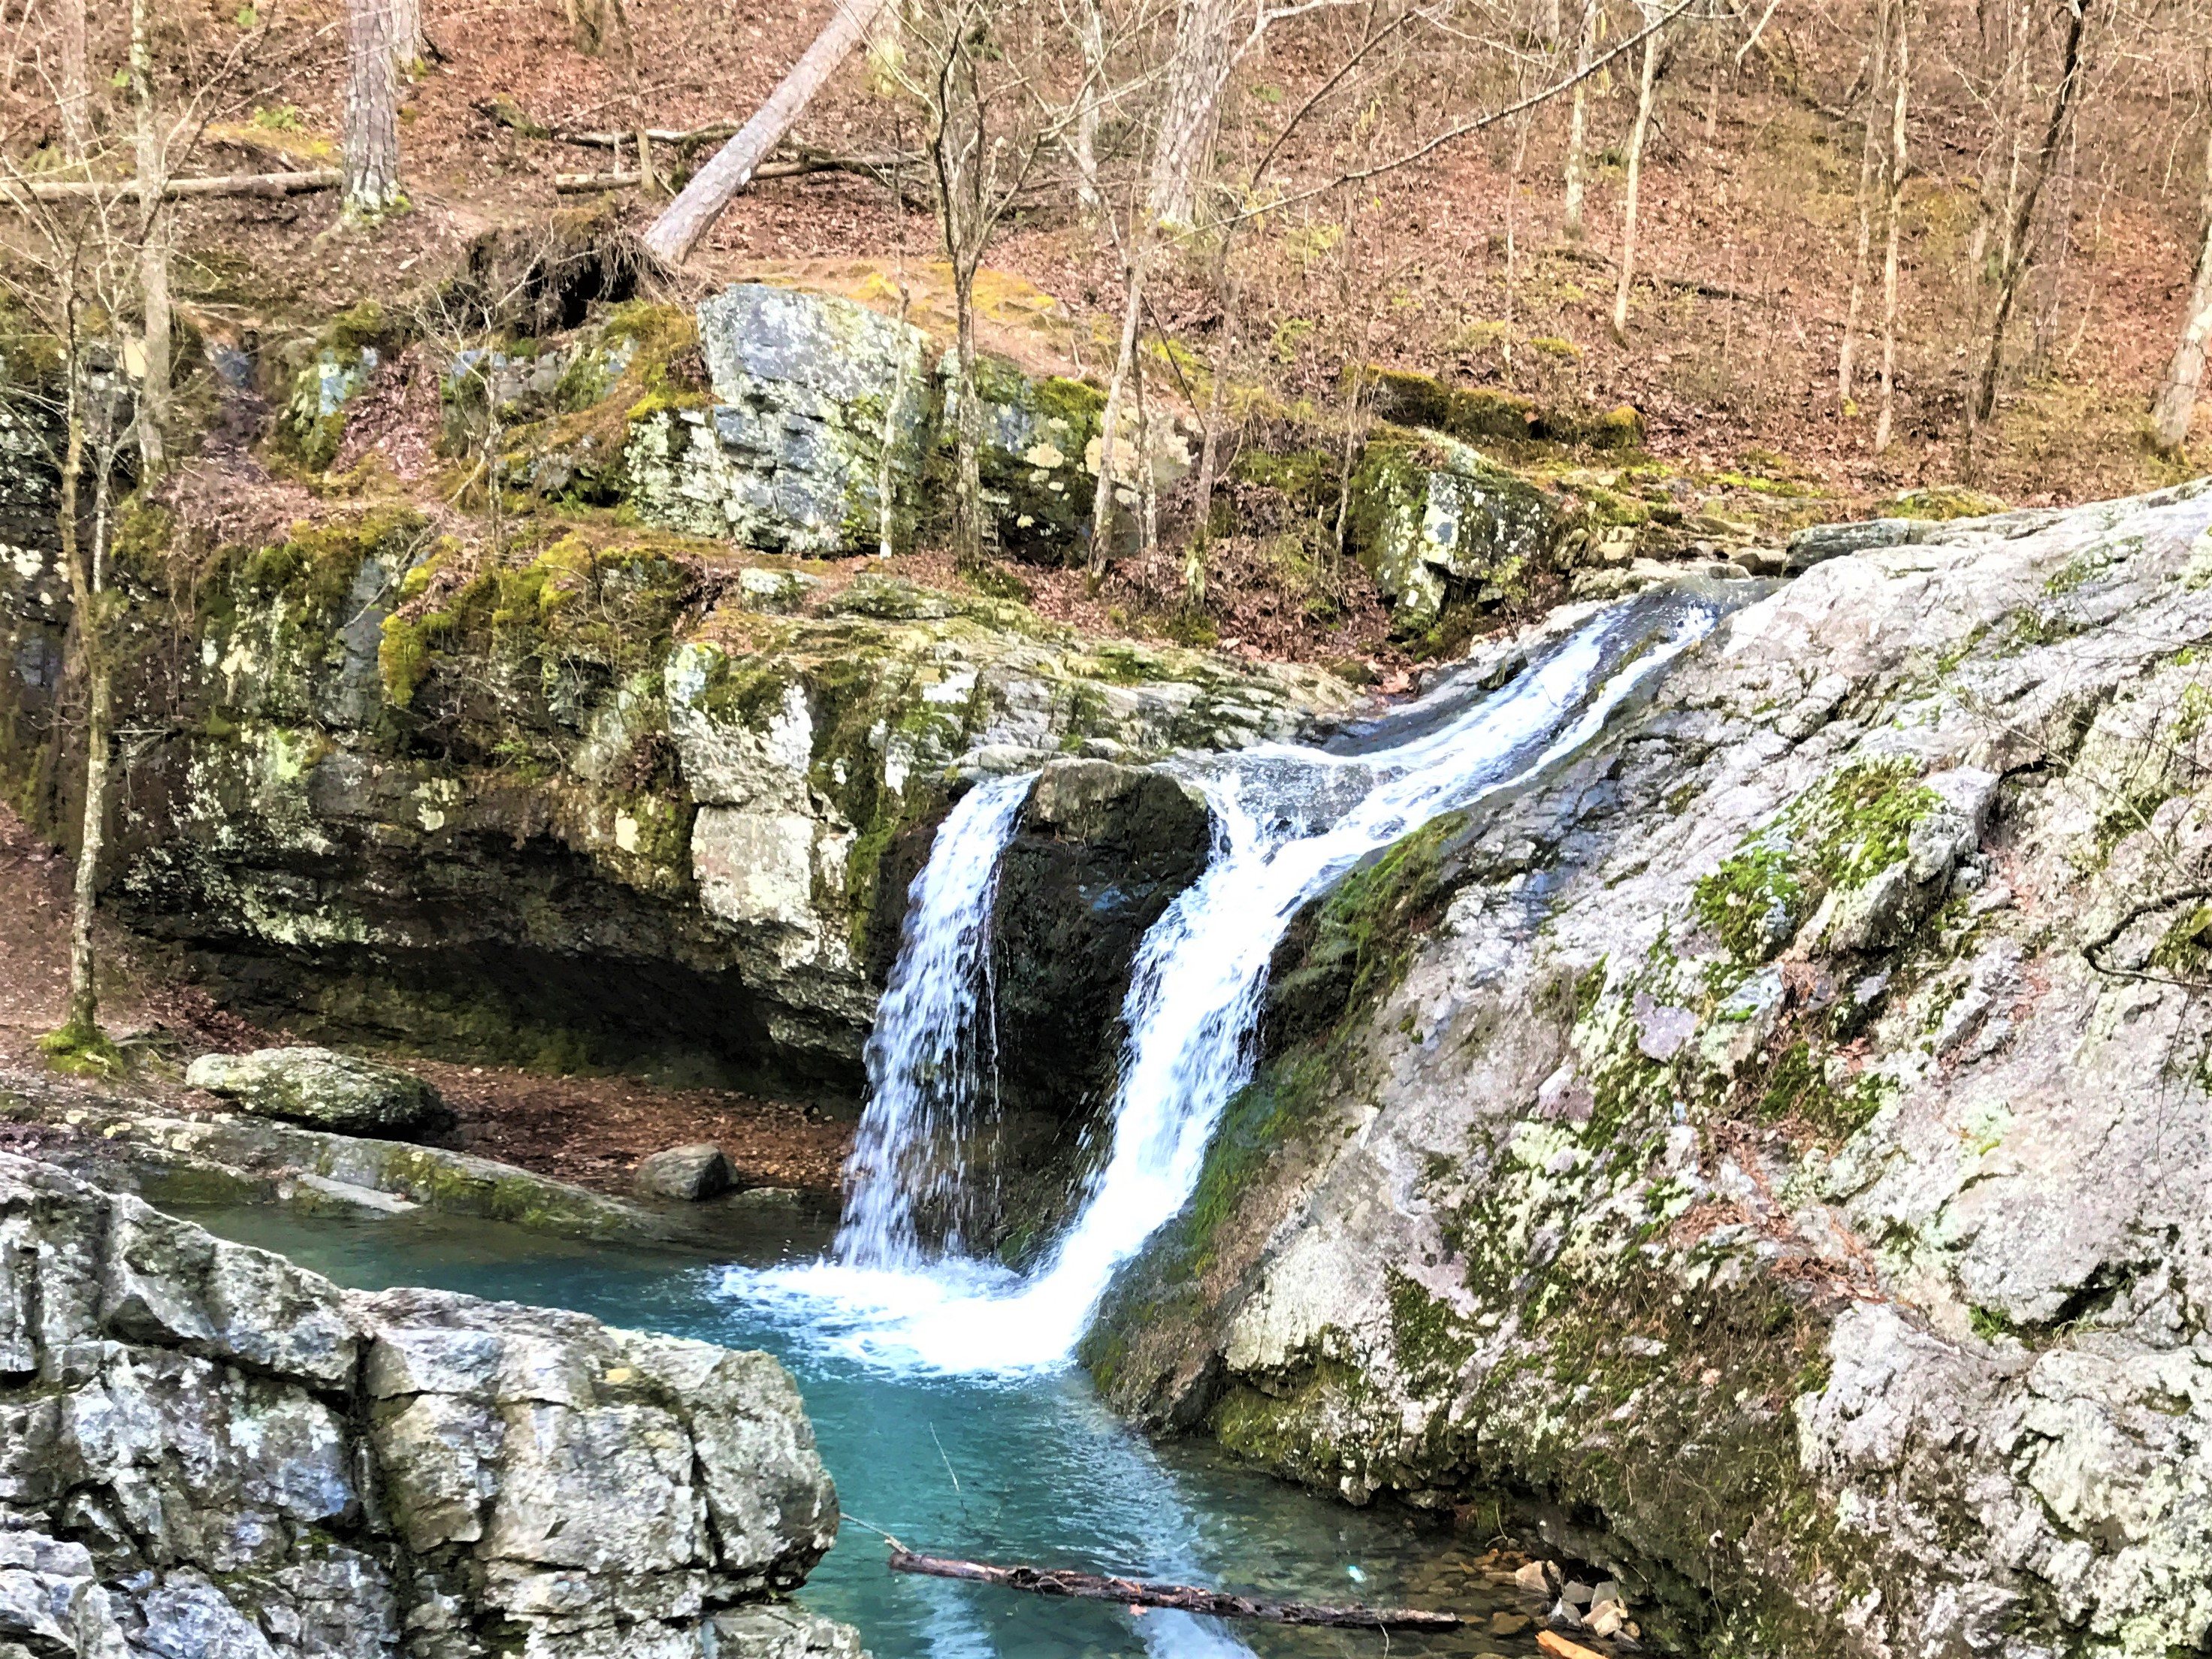 Falls Creek Falls at Lake Catherine State Park